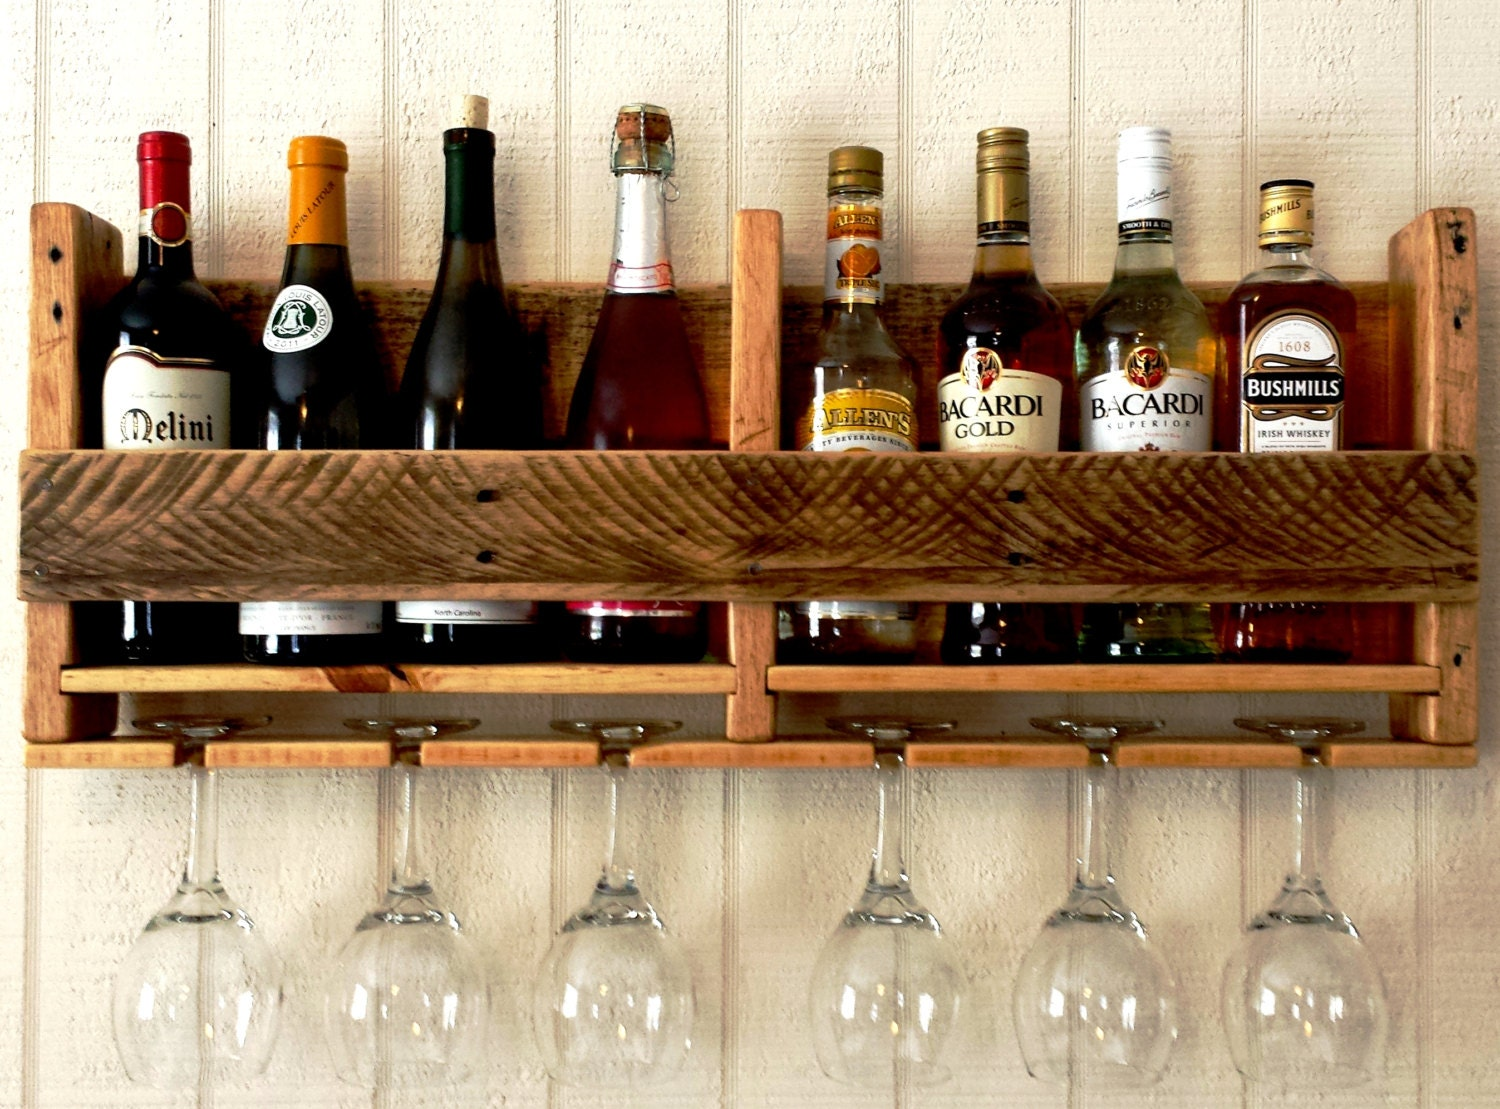 8 Bottle Reclaimed Wood Wall Mounted Wine Rack by  : ilfullxfull5824673976qfr from www.etsy.com size 1500 x 1109 jpeg 406kB